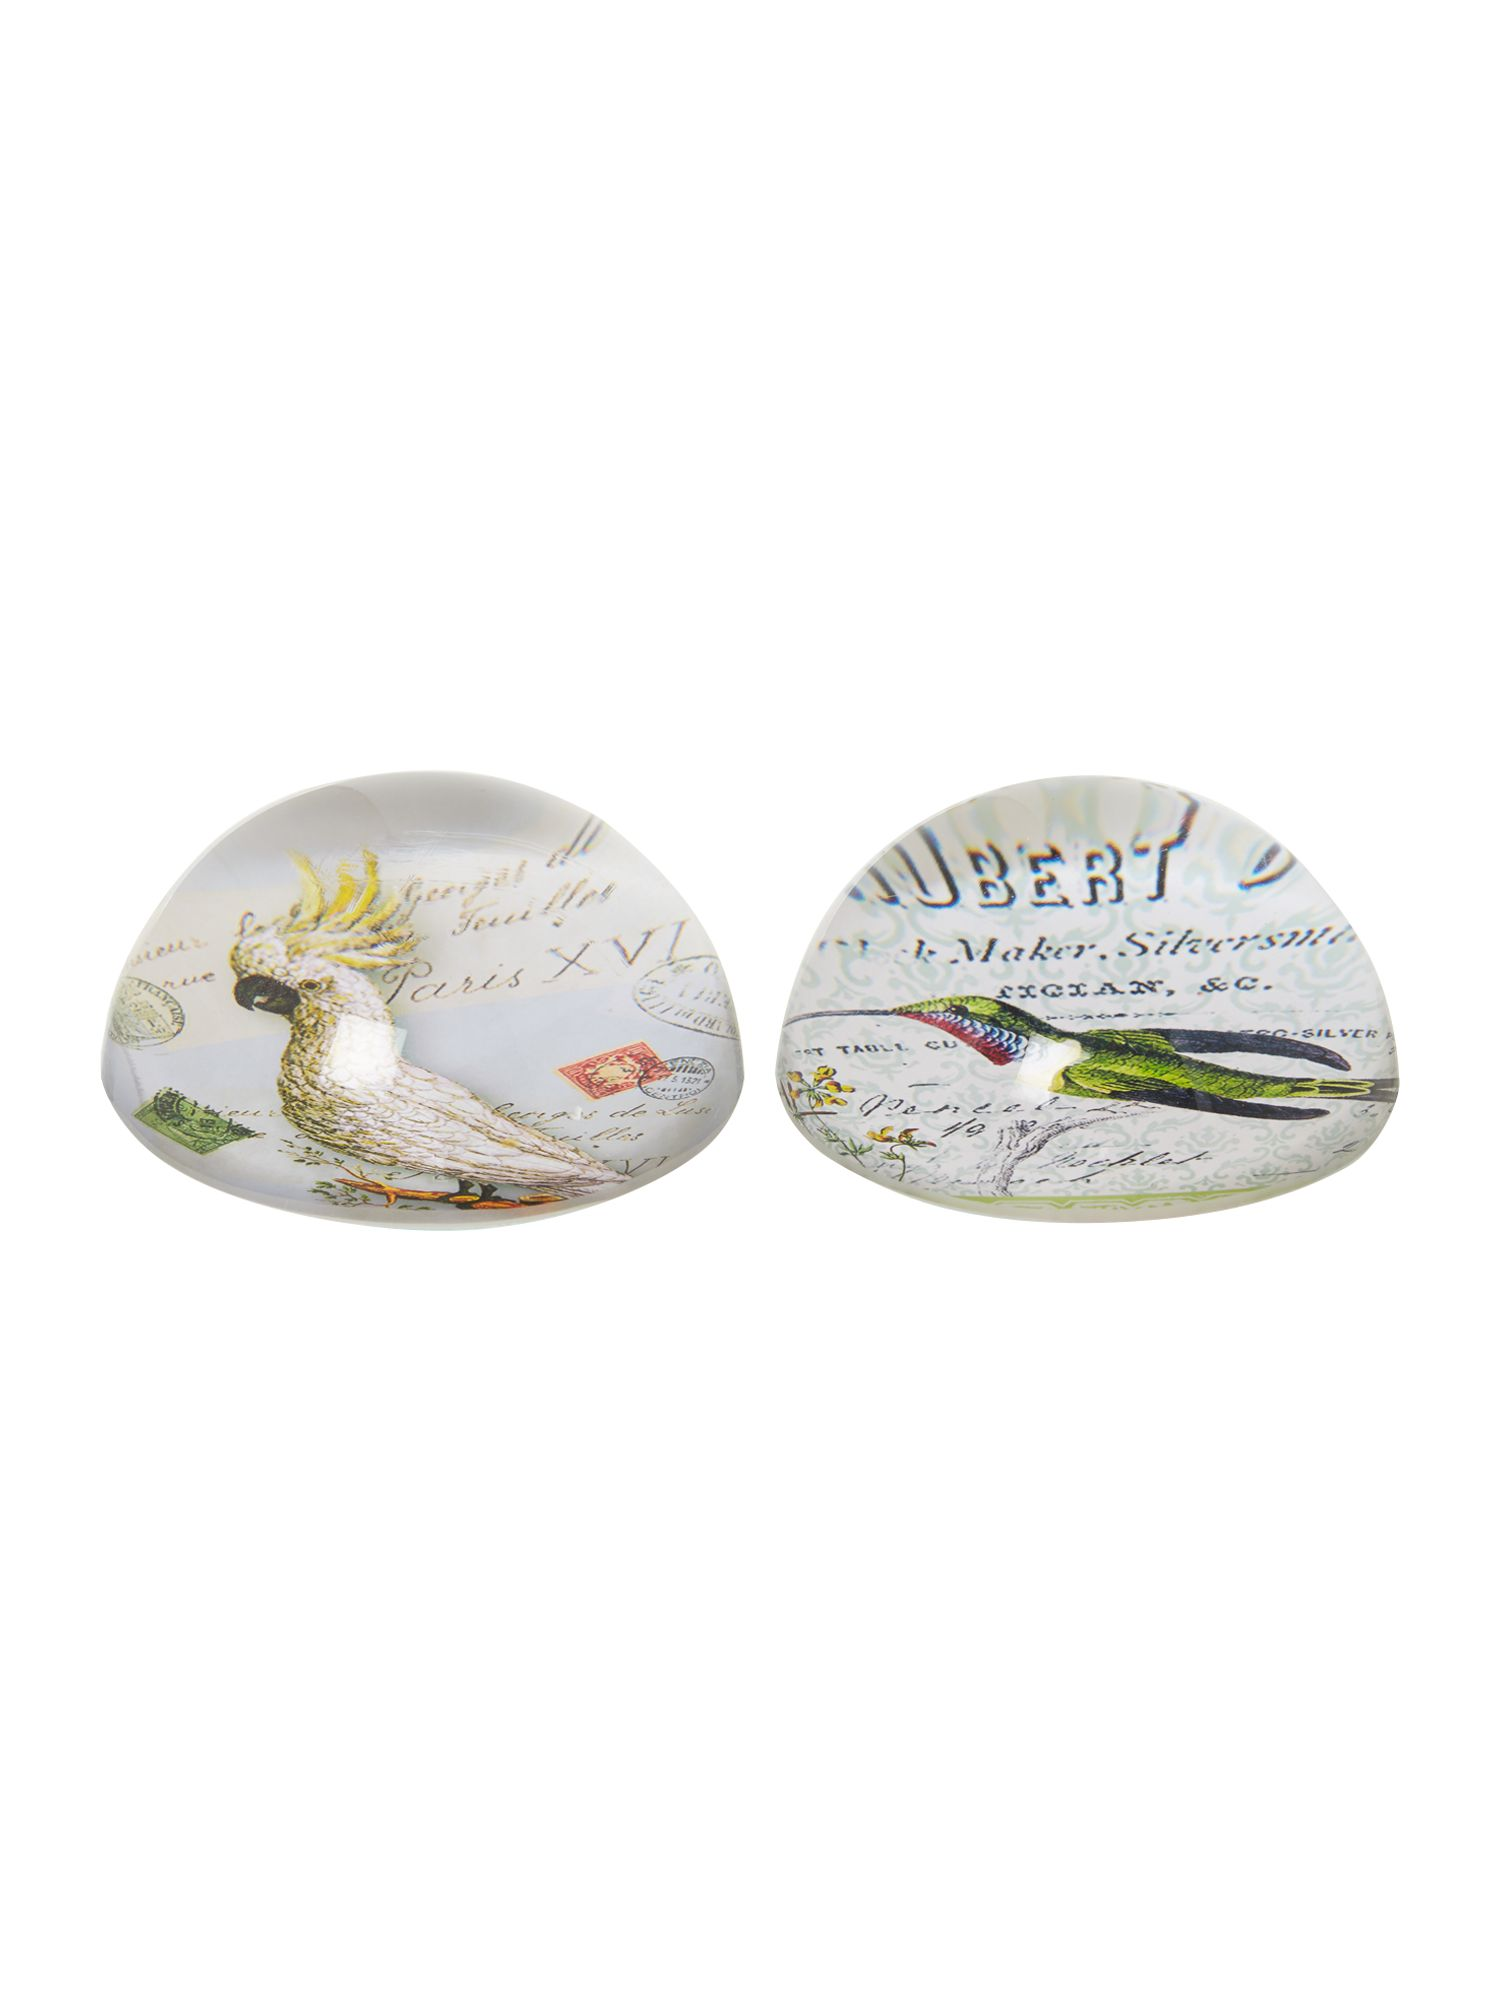 Ornithology set of two paperweights